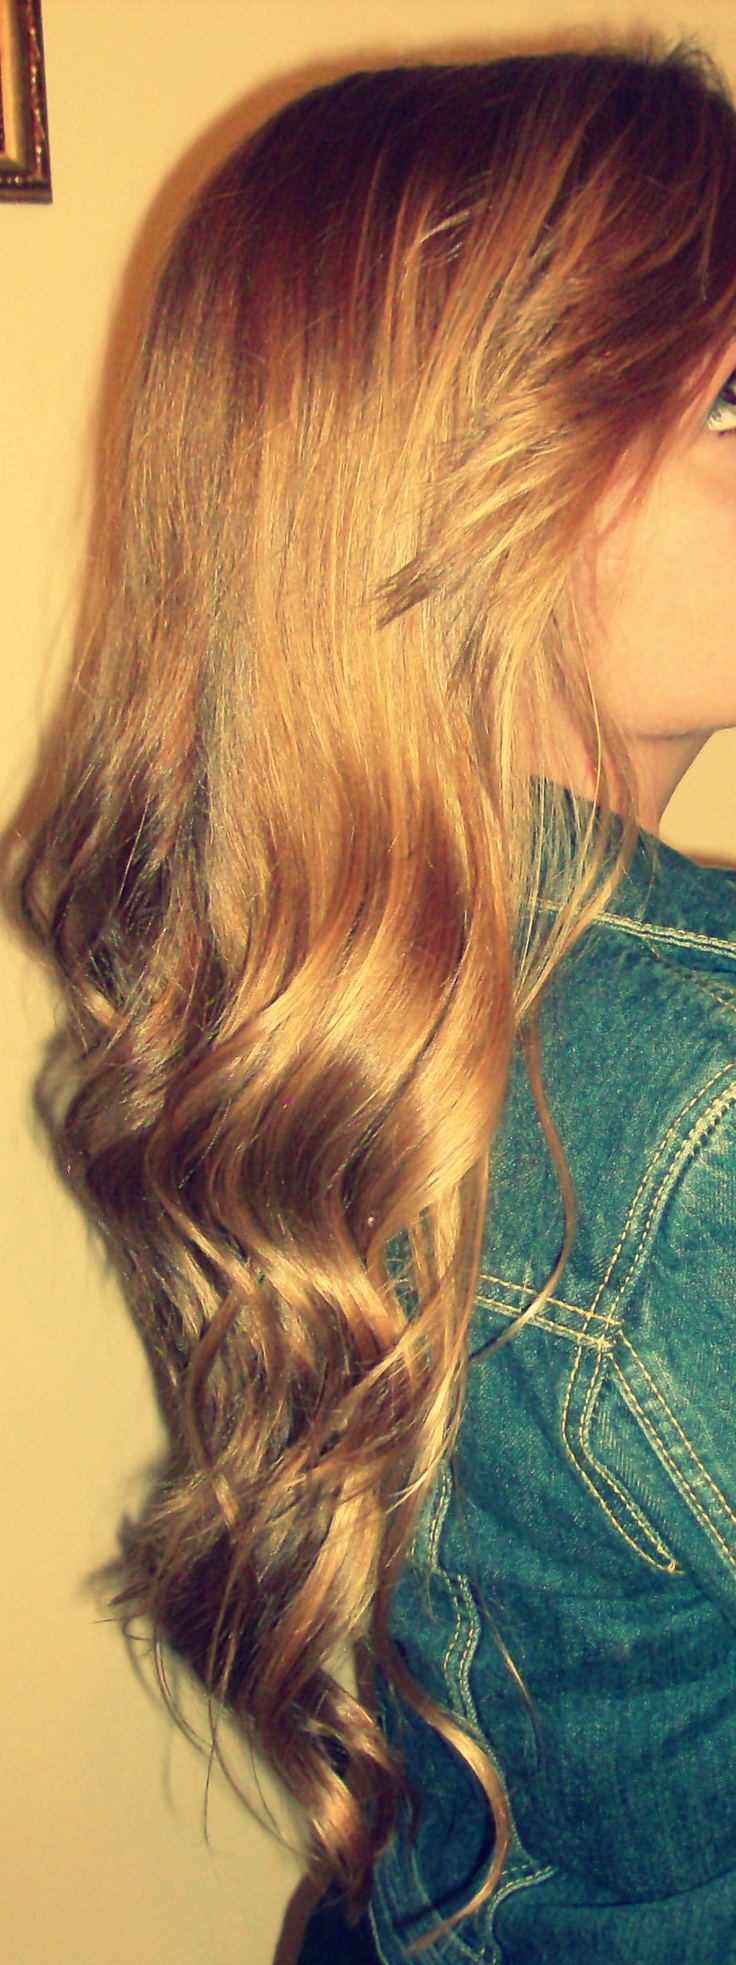 Long Curly Wavy Hair Hair Styles Amp Products Pinterest